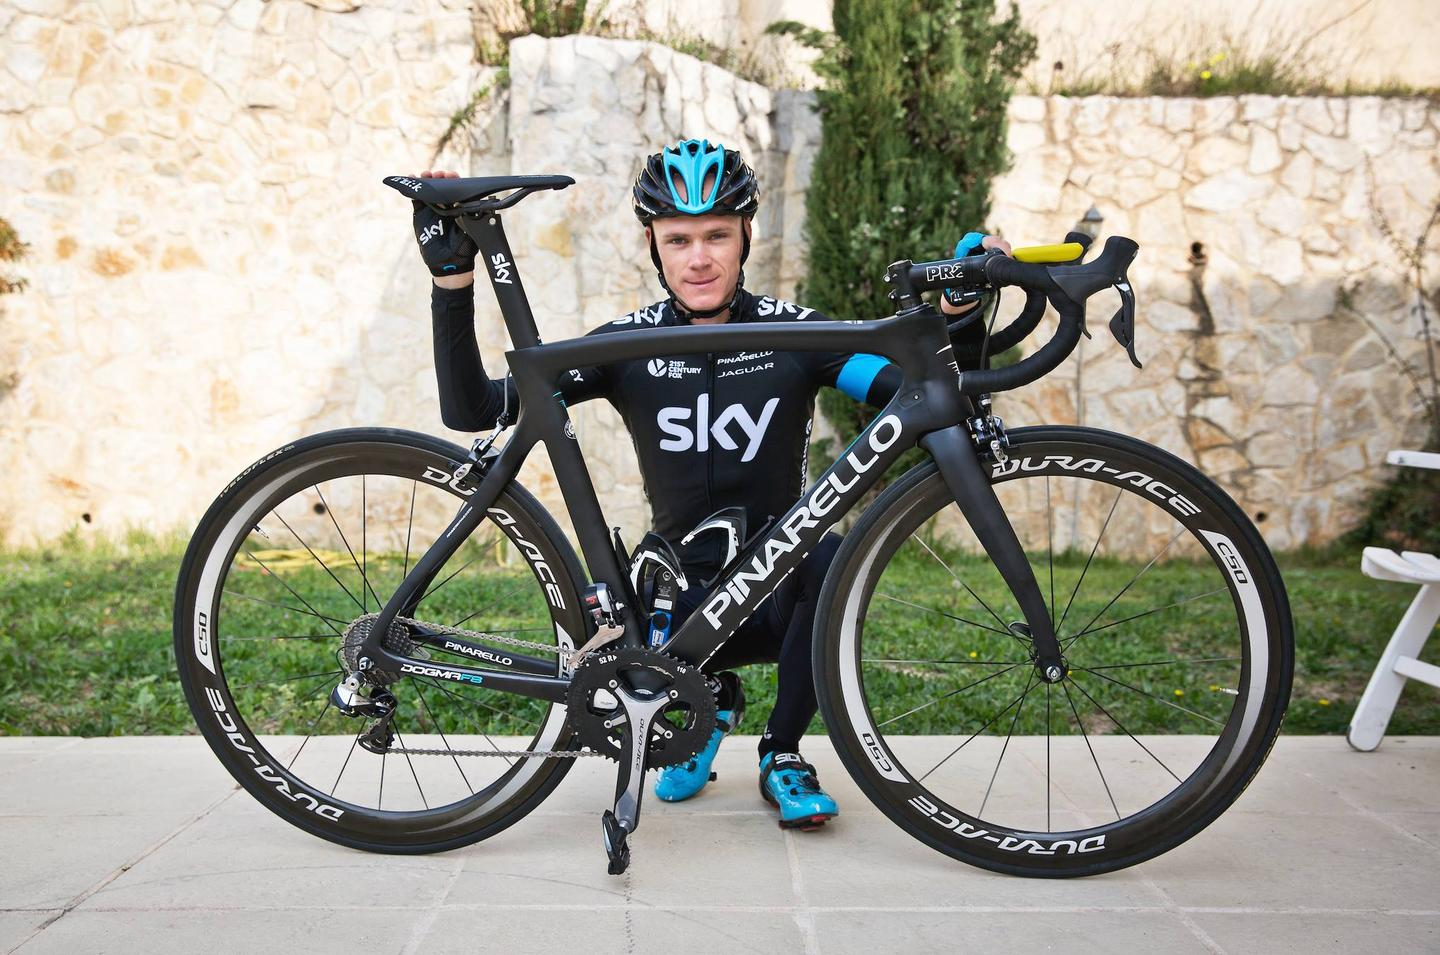 Team Sky rider Chris Froome, with the new Pinarello Dogma F8